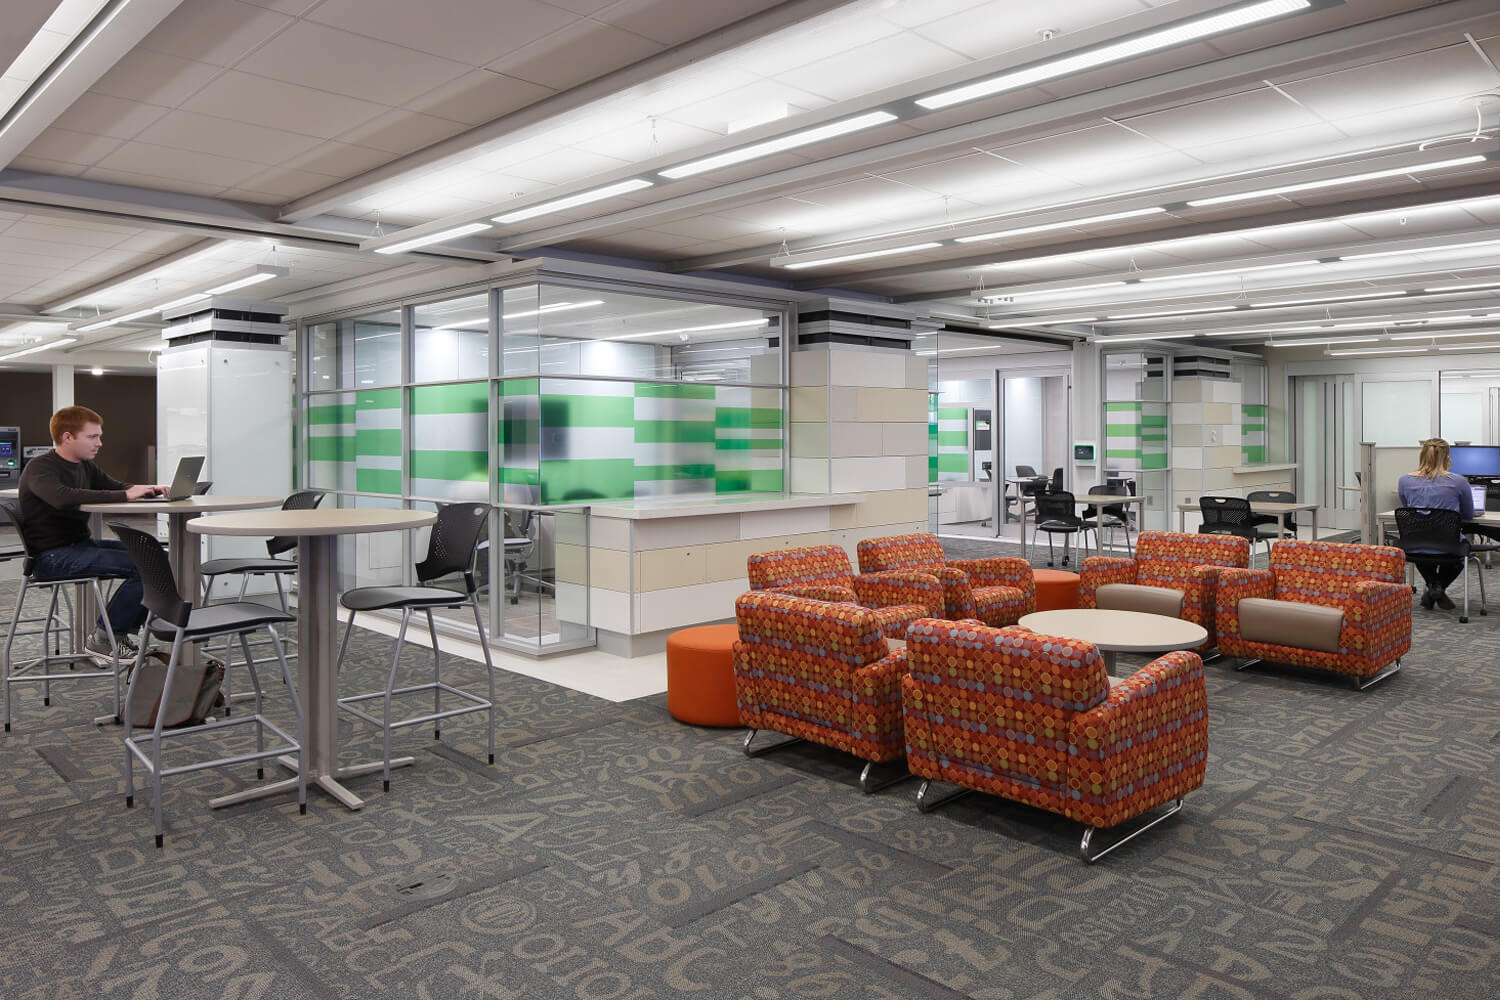 cmba-architects-portfolio-library-Learning-Commons-10